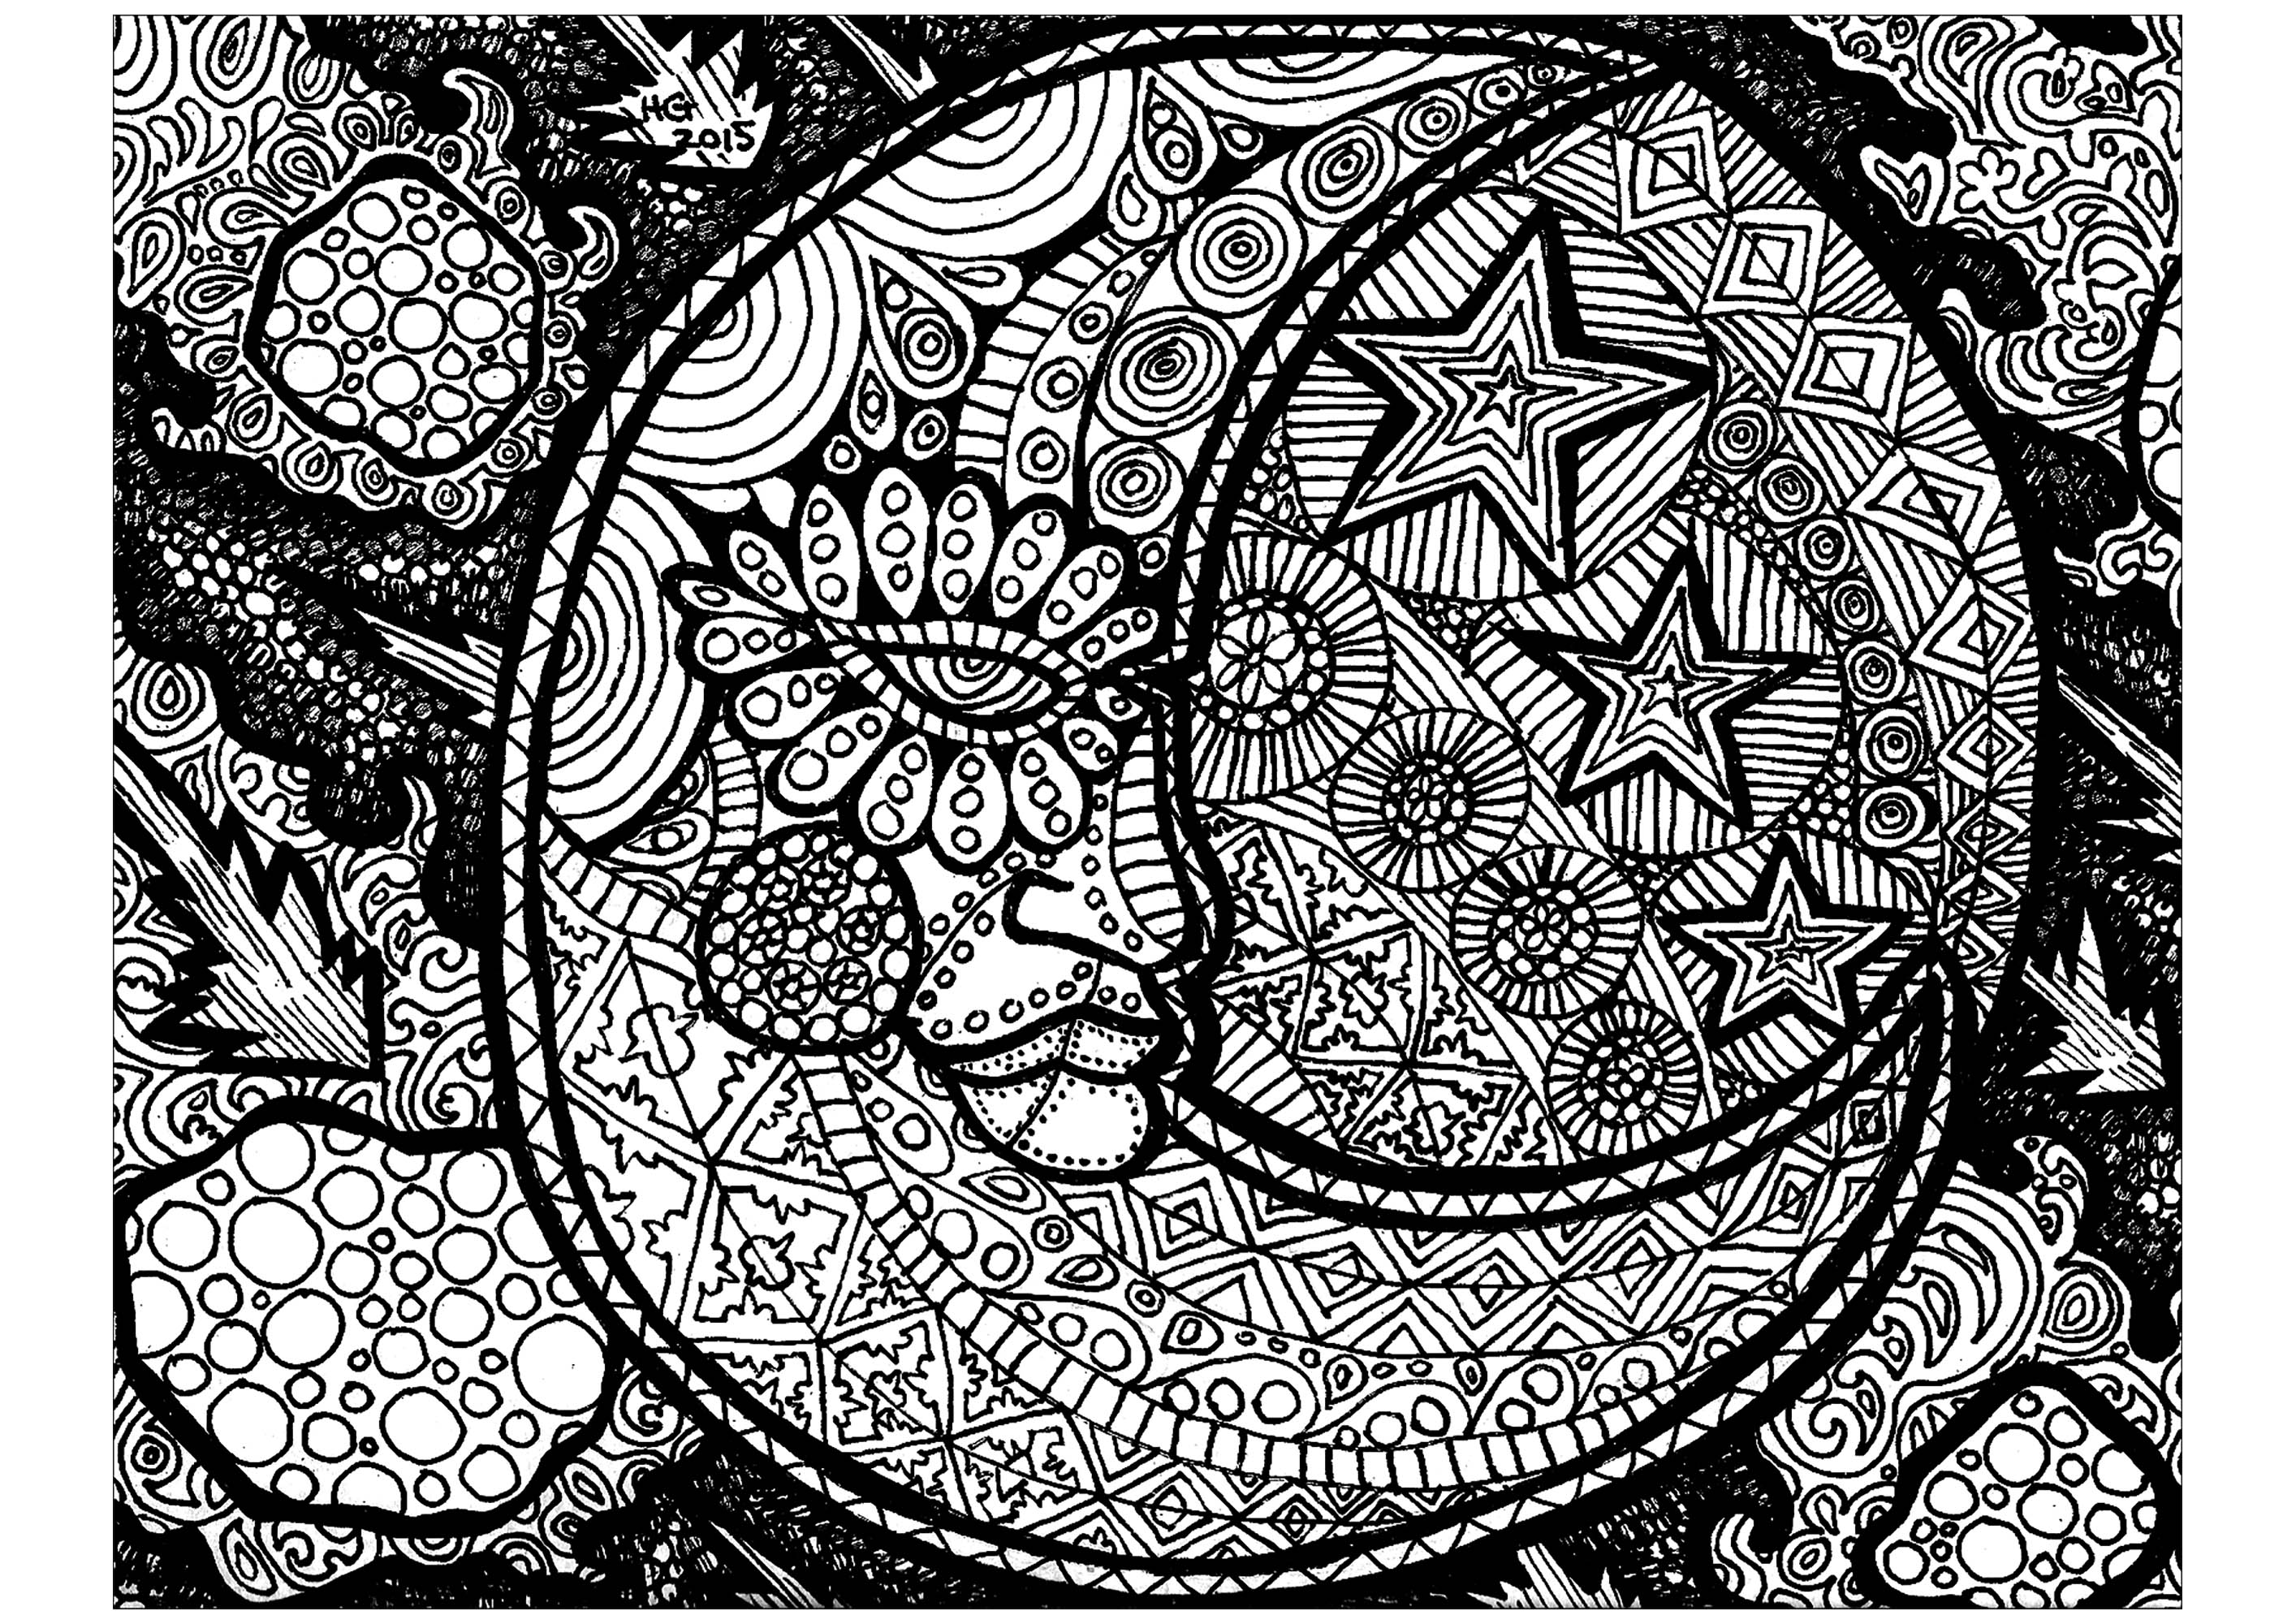 coloring pages for adults patterns floral coloring pages for adults best coloring pages for pages patterns coloring for adults